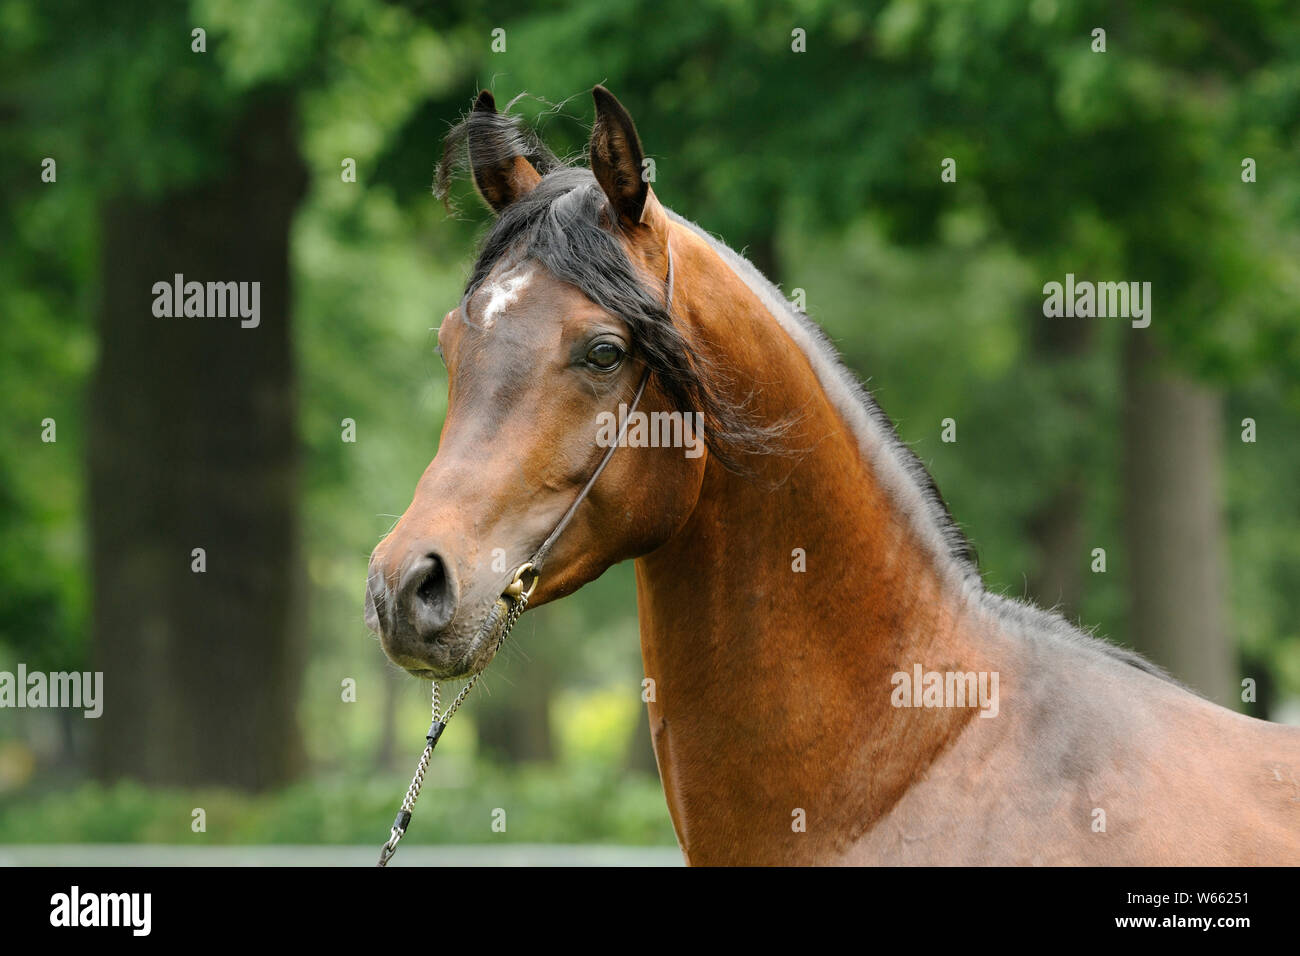 Brown Arabian Horse Stallion With Showholster Stock Photo Alamy